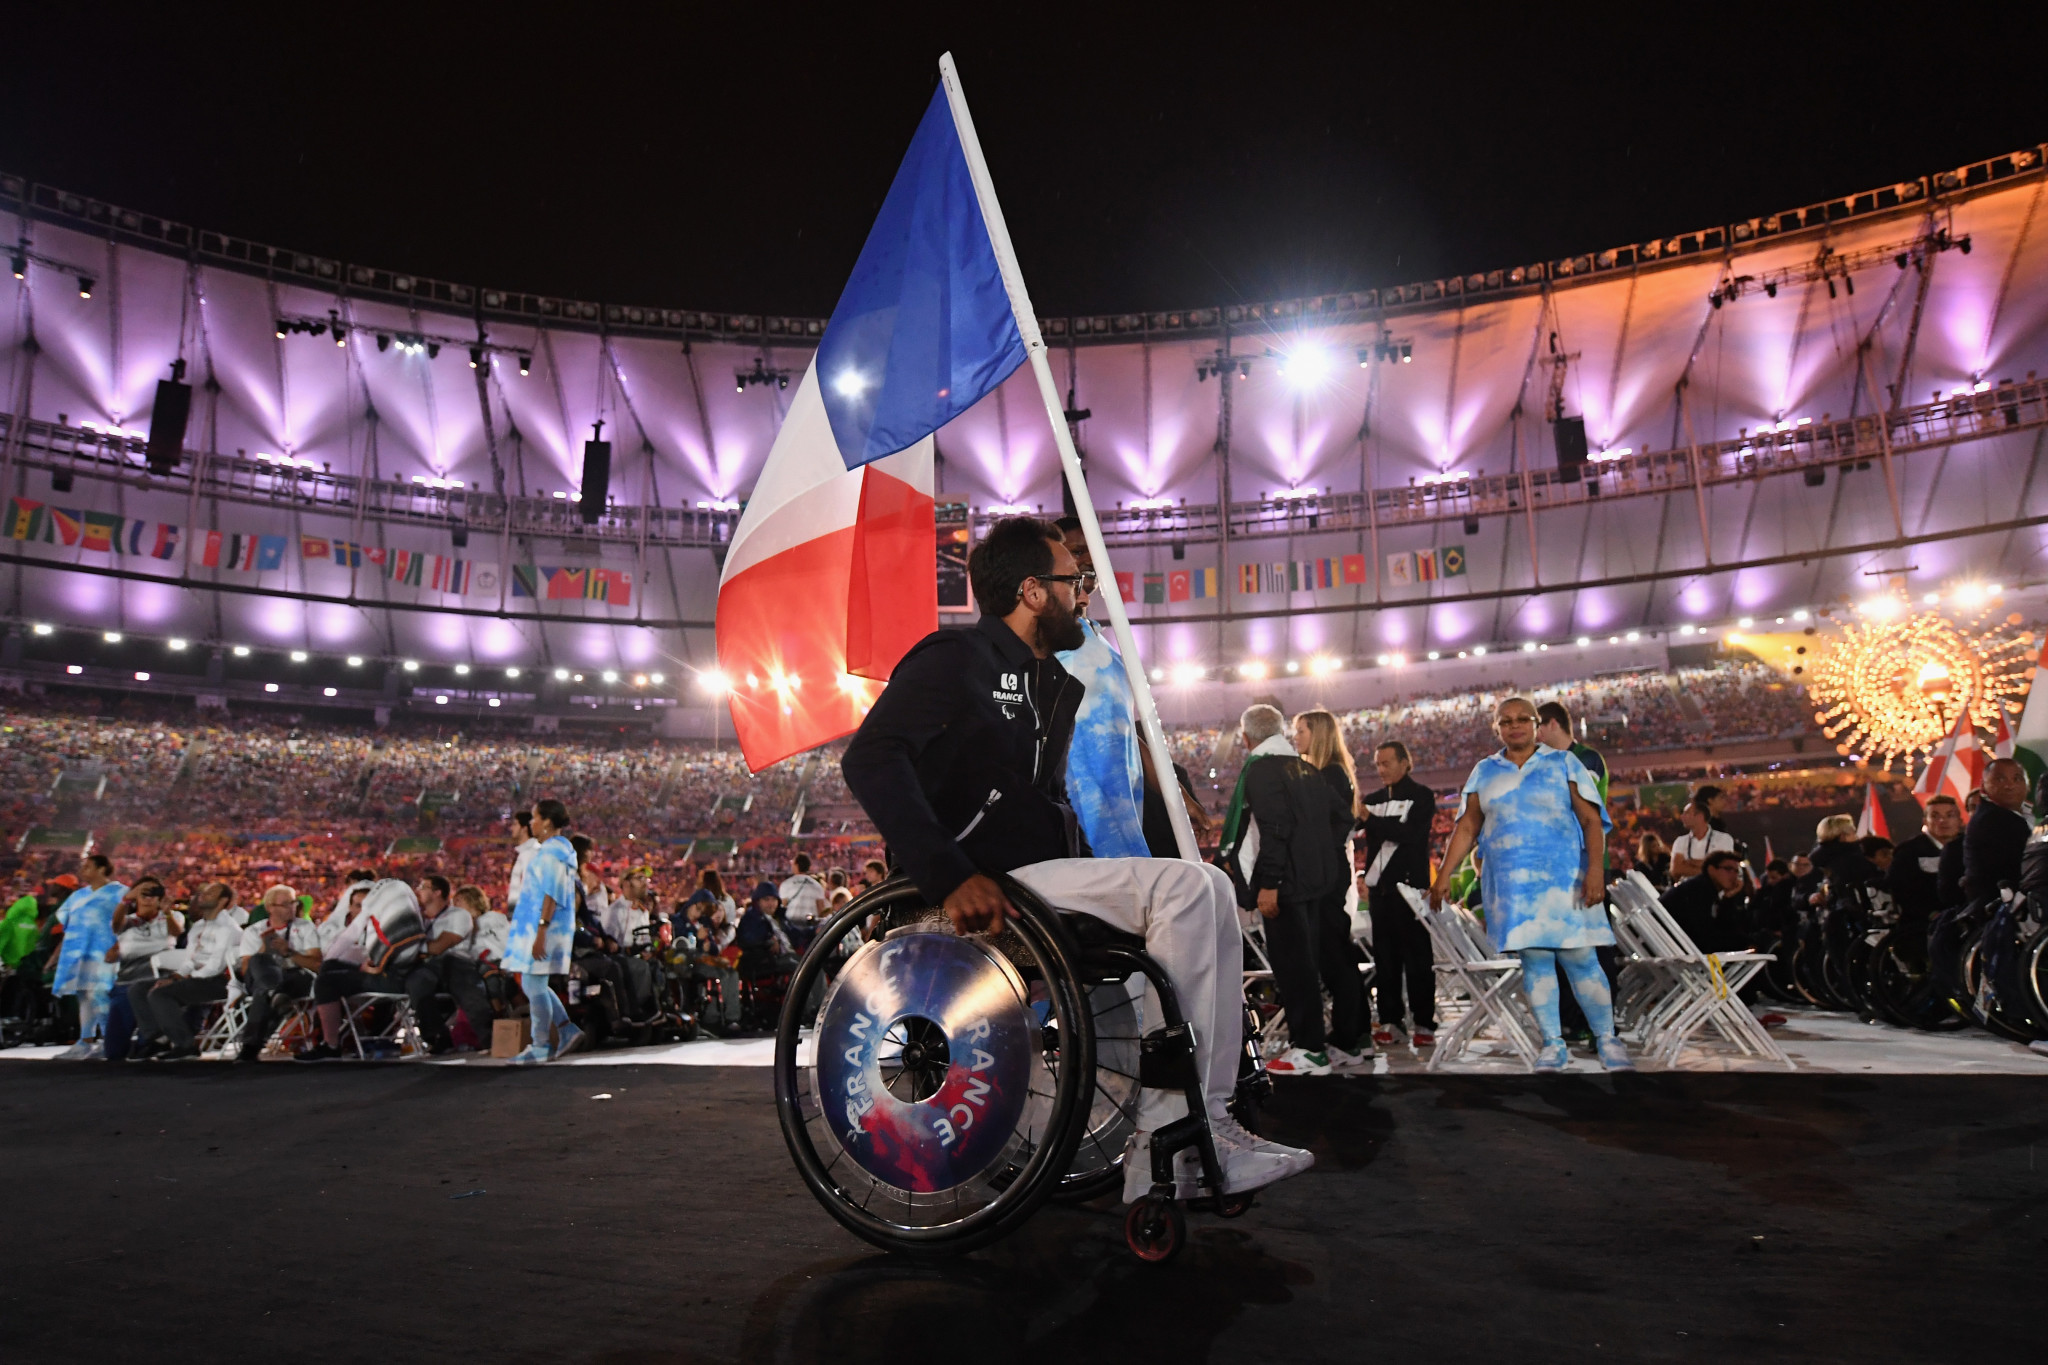 France is hoping for a legacy from the Paris 2024 Paralympic Games ©Getty Images